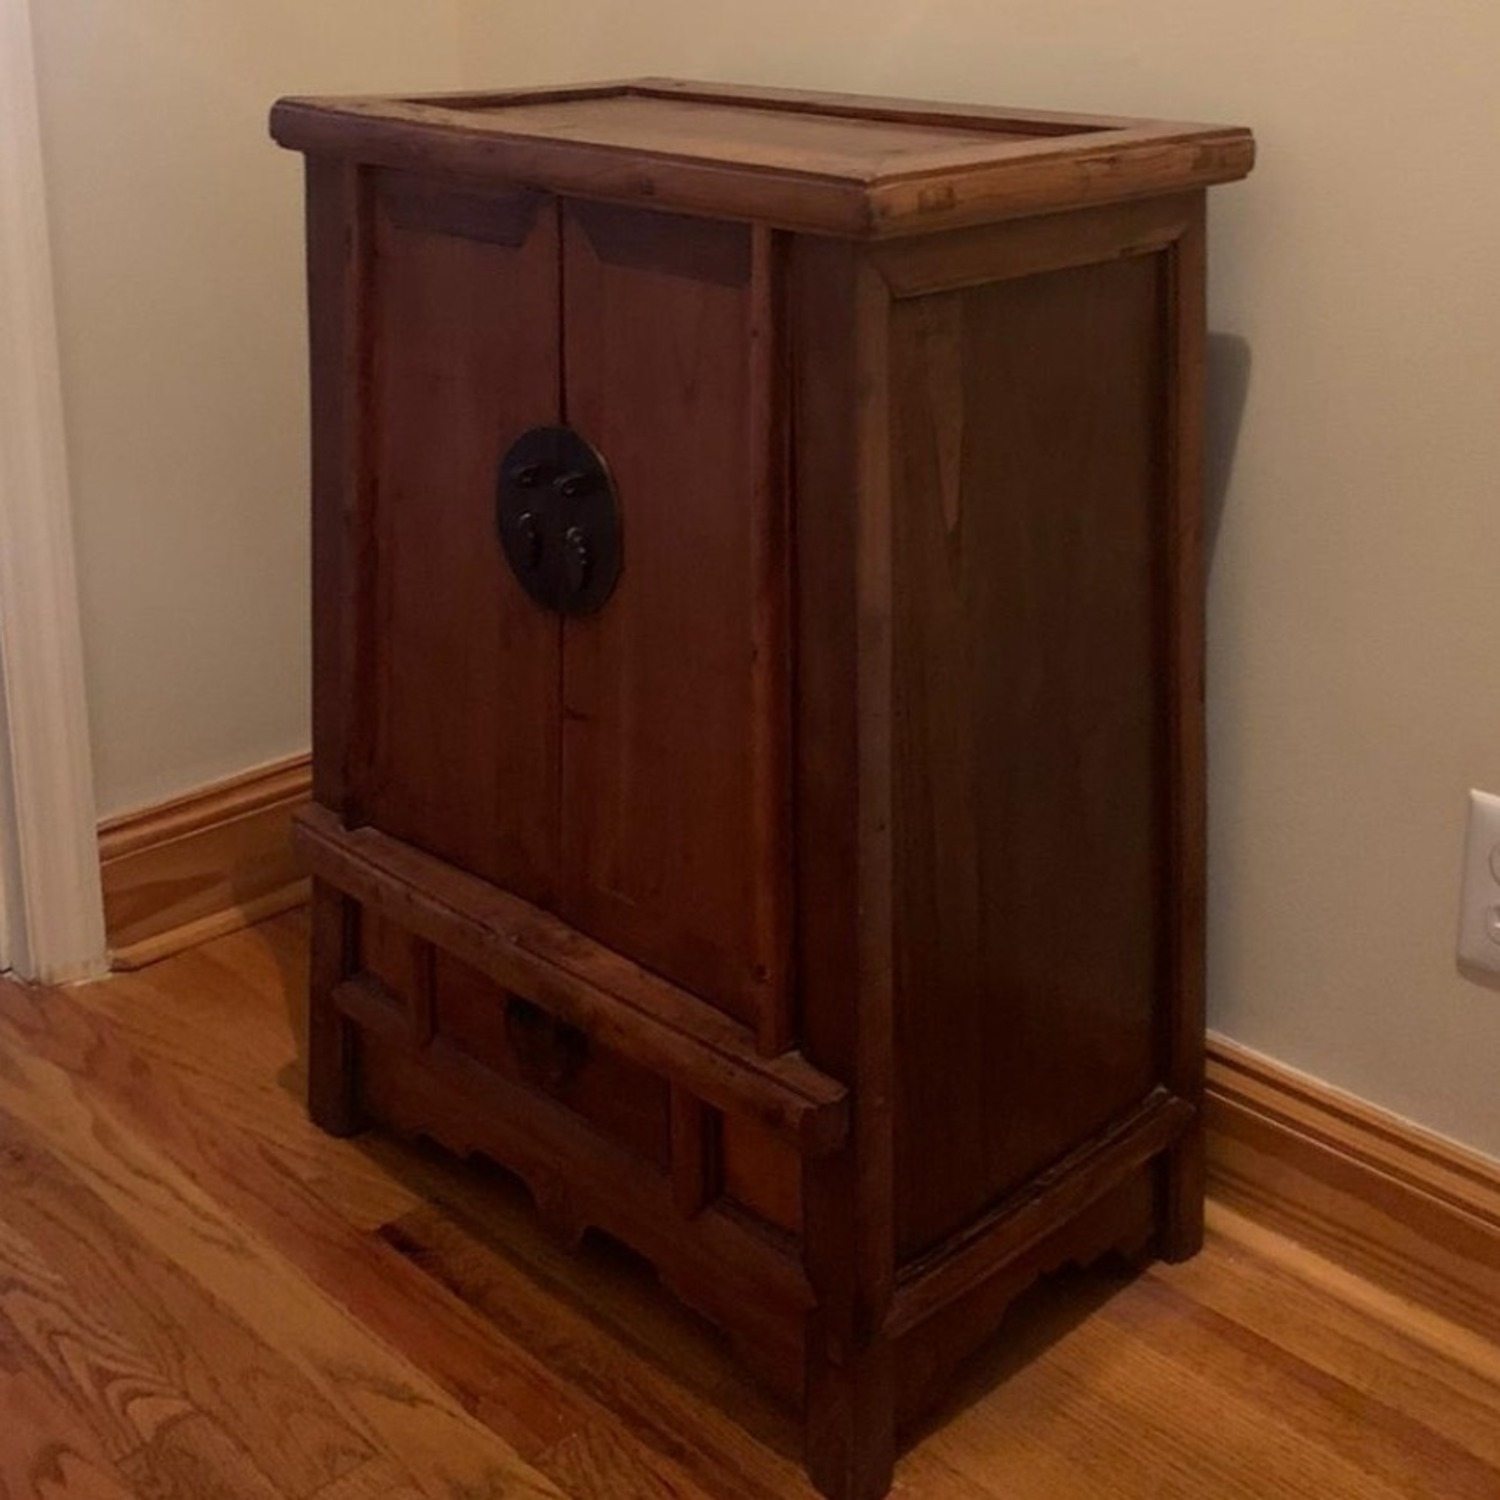 ABC Carpet and Home Antique Wood Chest - image-1